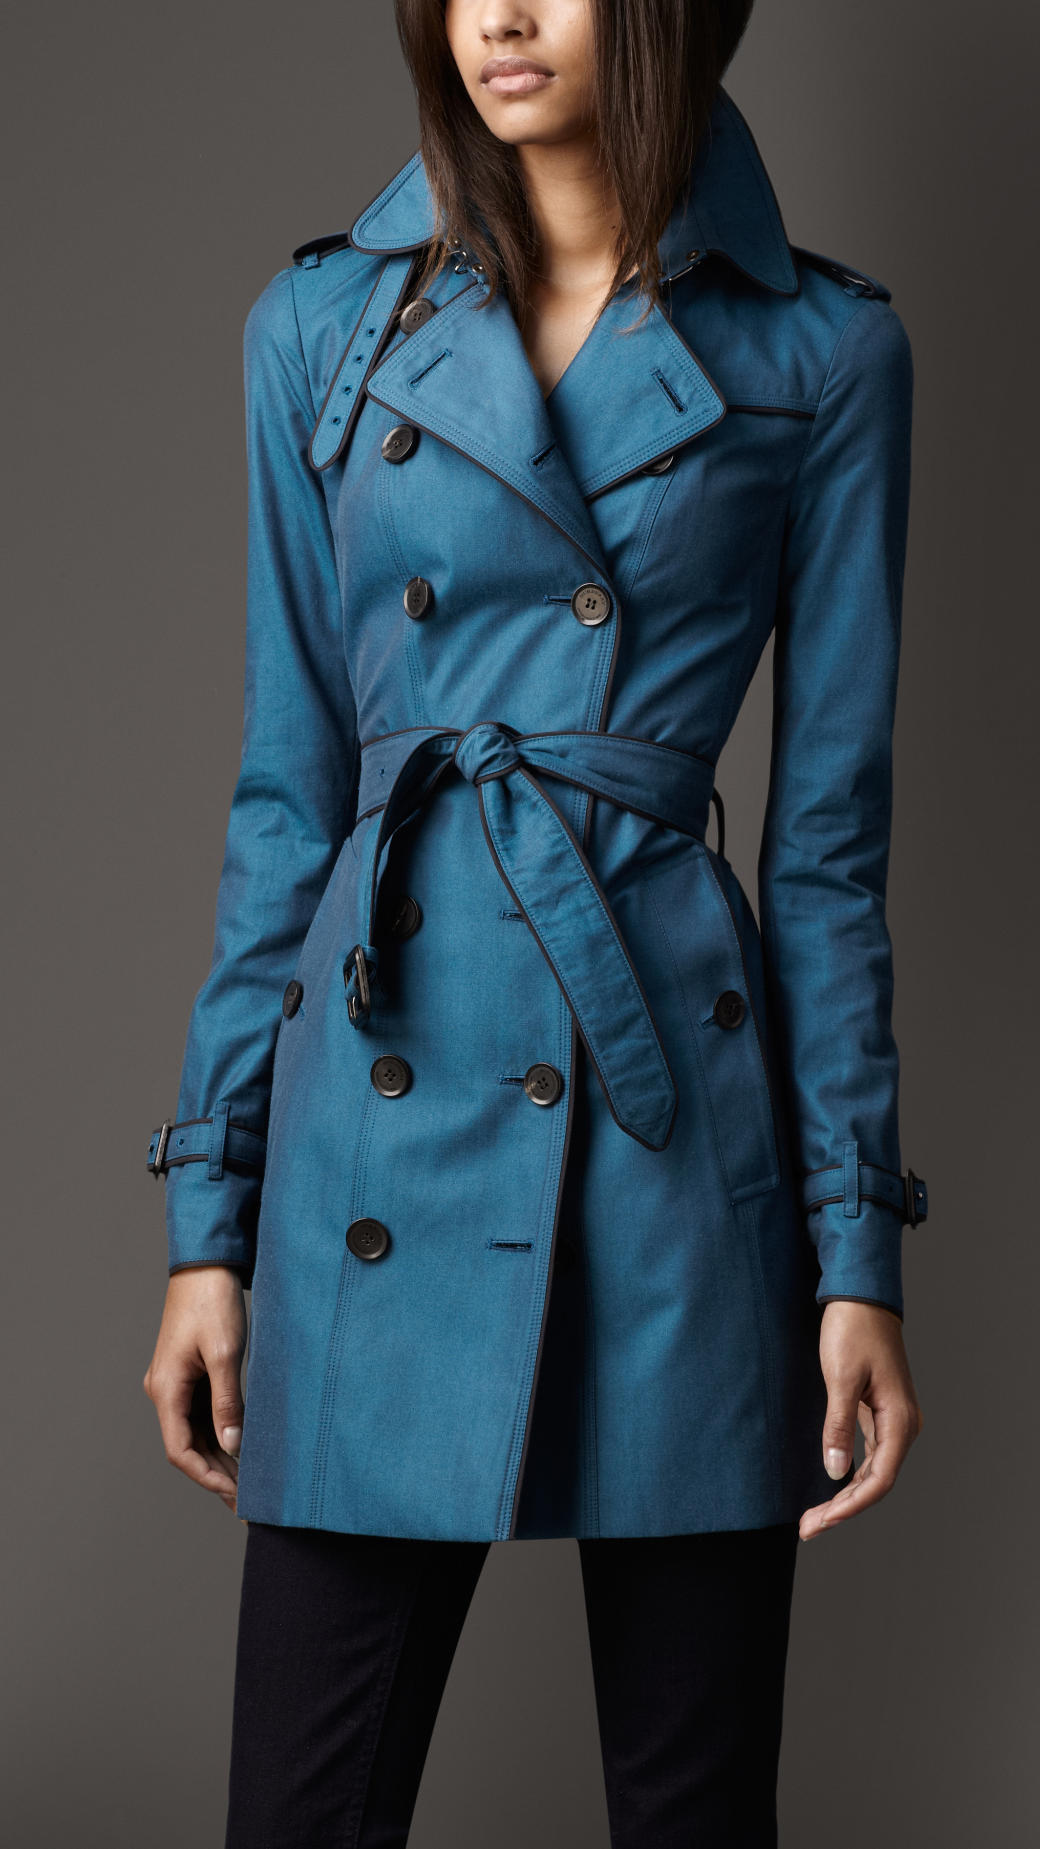 Find great deals on eBay for navy blue trench coat. Shop with confidence.